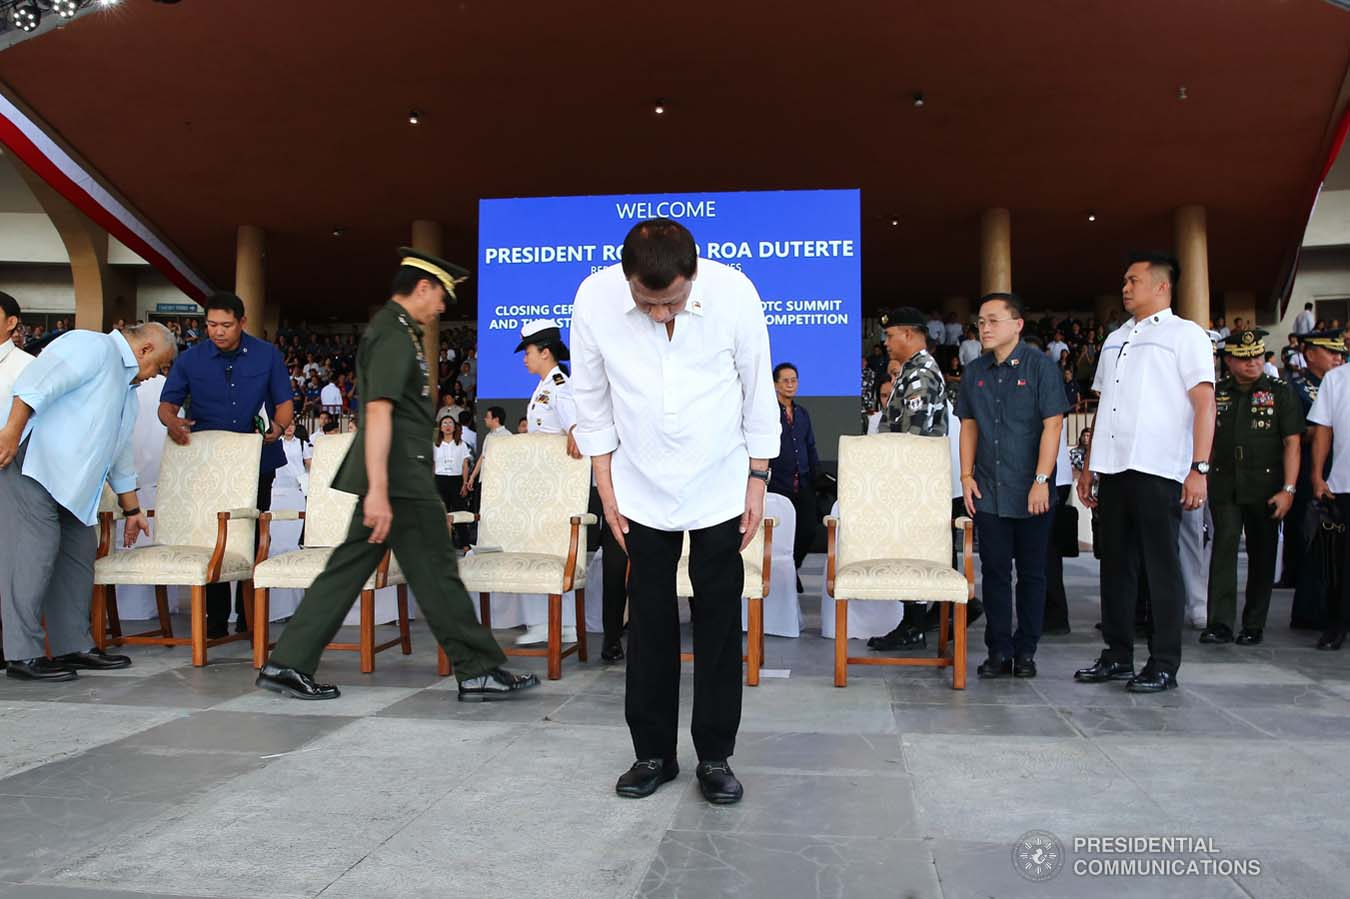 President Rodrigo Roa Duterte takes a bow before the guests during the closing ceremony of the National Reserve Officers' Training Corps (ROTC) Summit and the 1st Presidential Silent Drill Competition at the Quirino Grandstand in Manila on December 20, 2019. REY BANIQUET/PRESIDENTIAL PHOTO